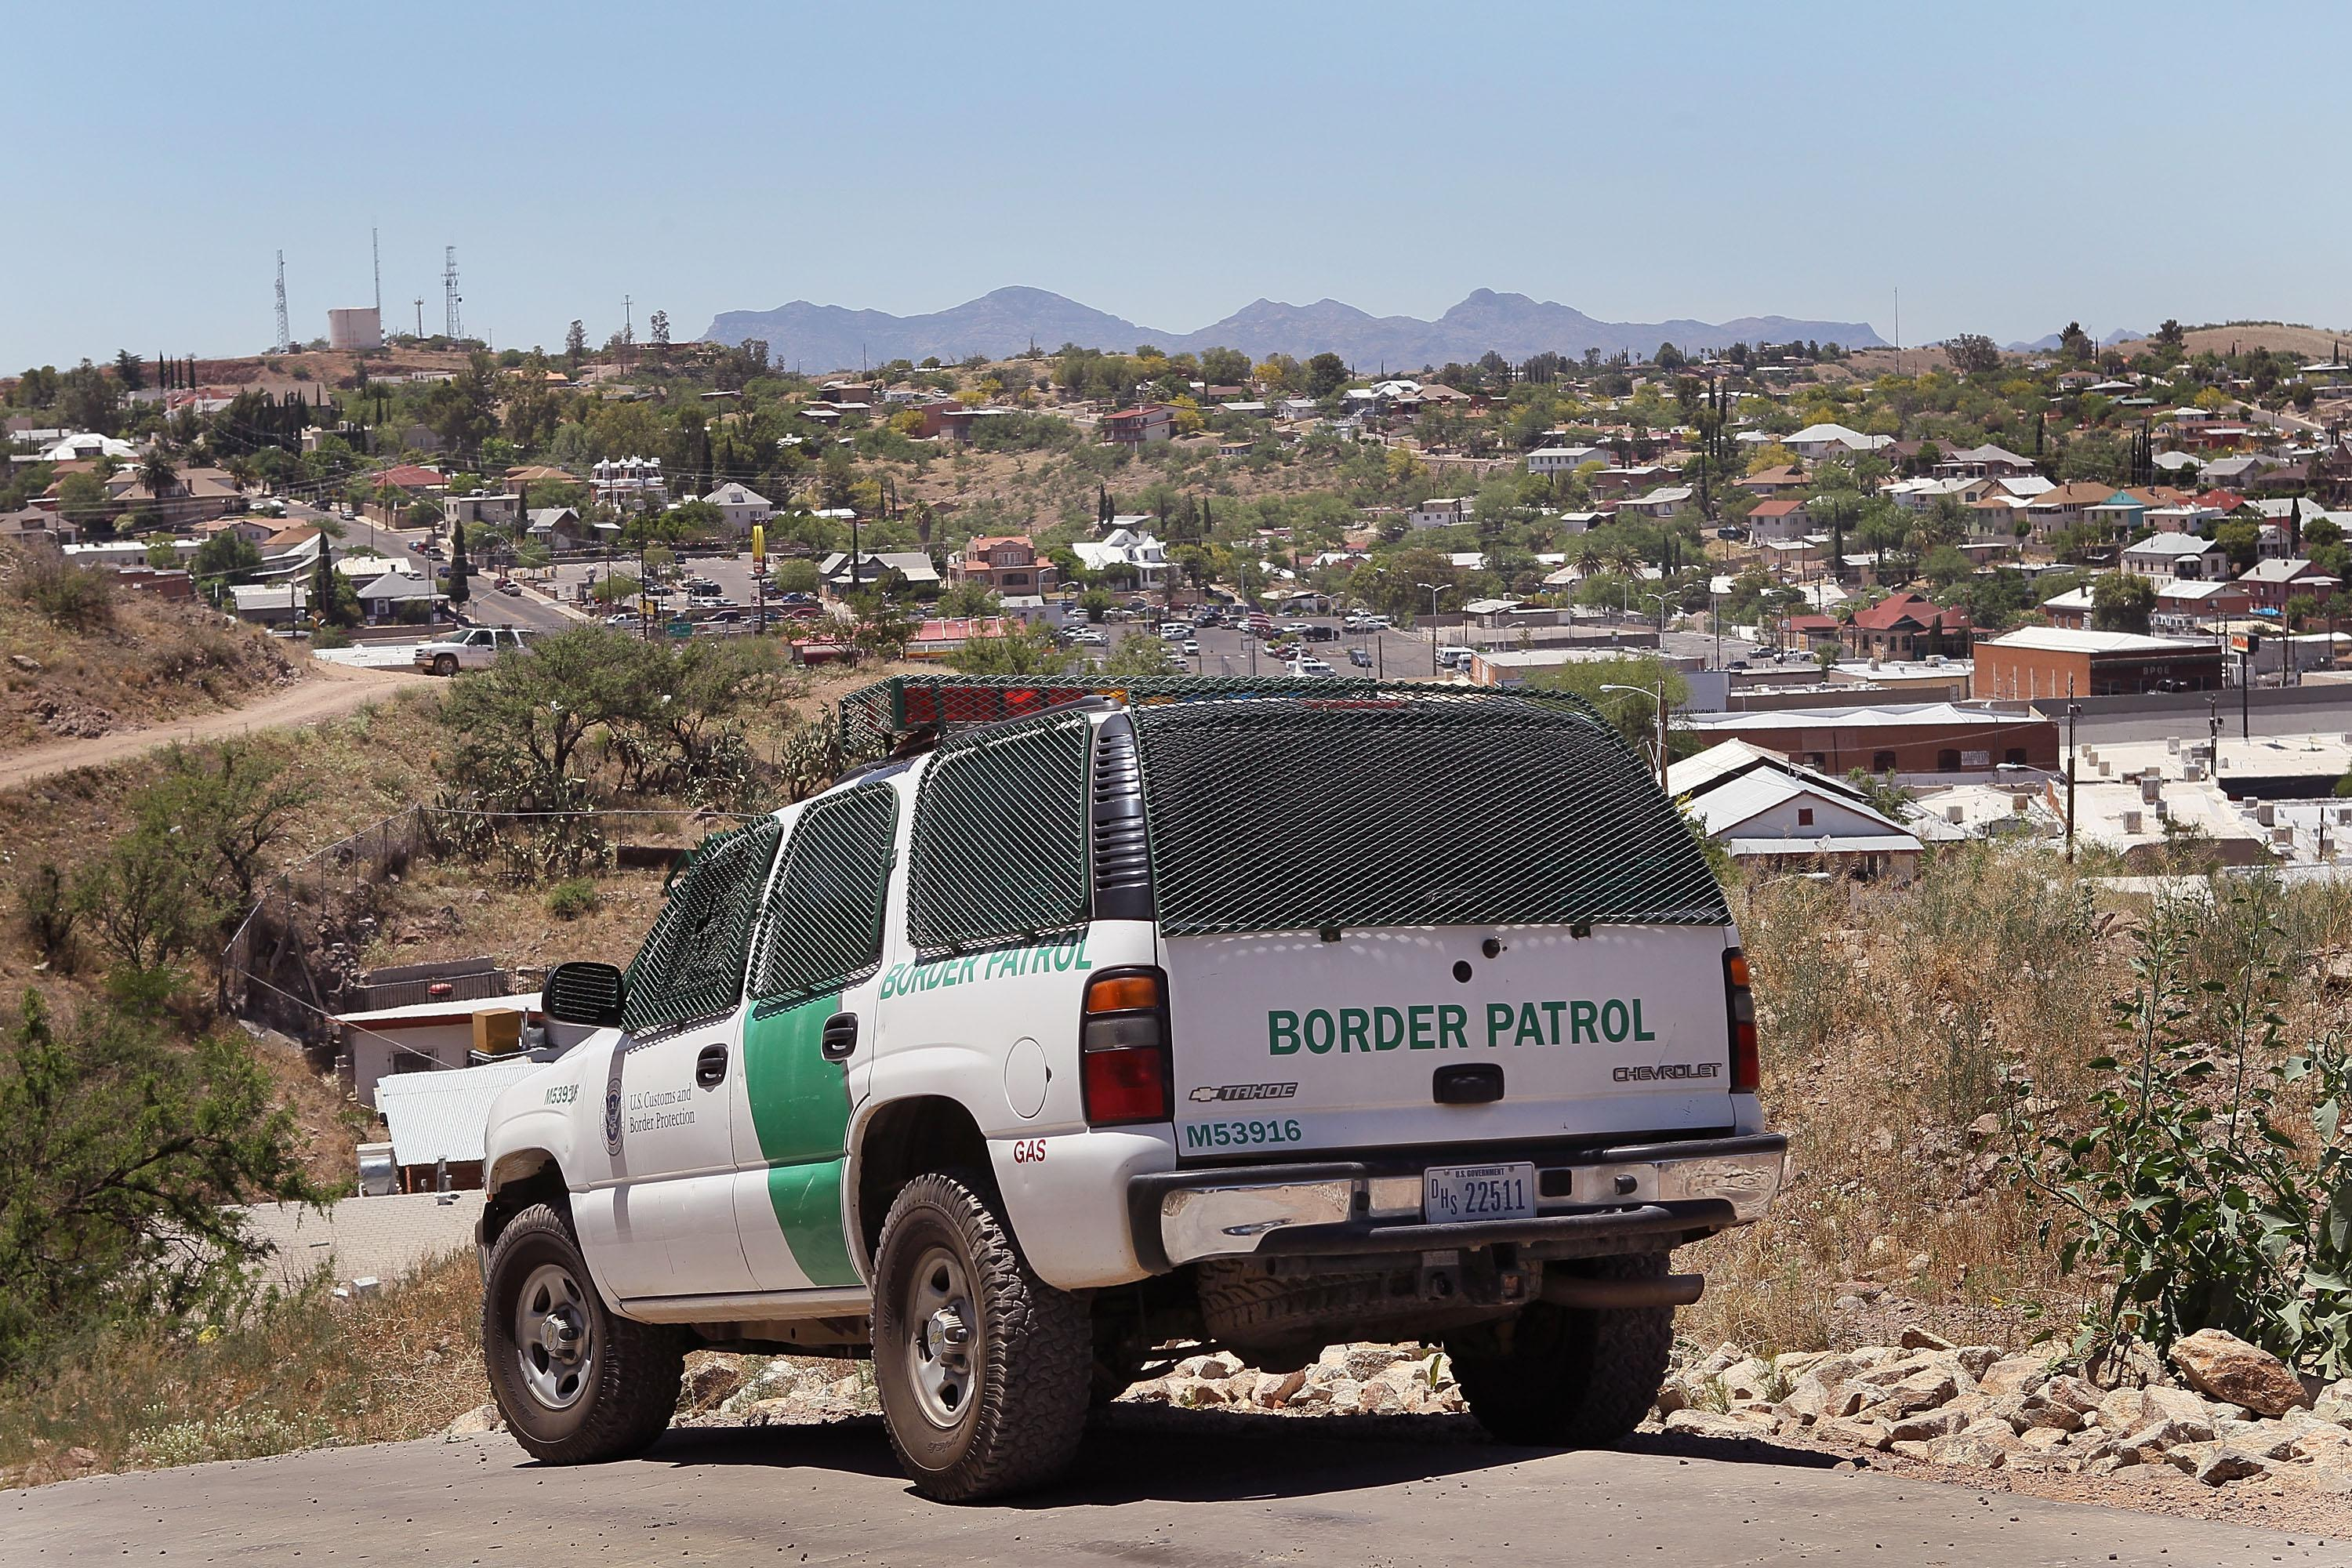 Border Patrol Agent Detains US Citizens for Speaking Spanish in Montana